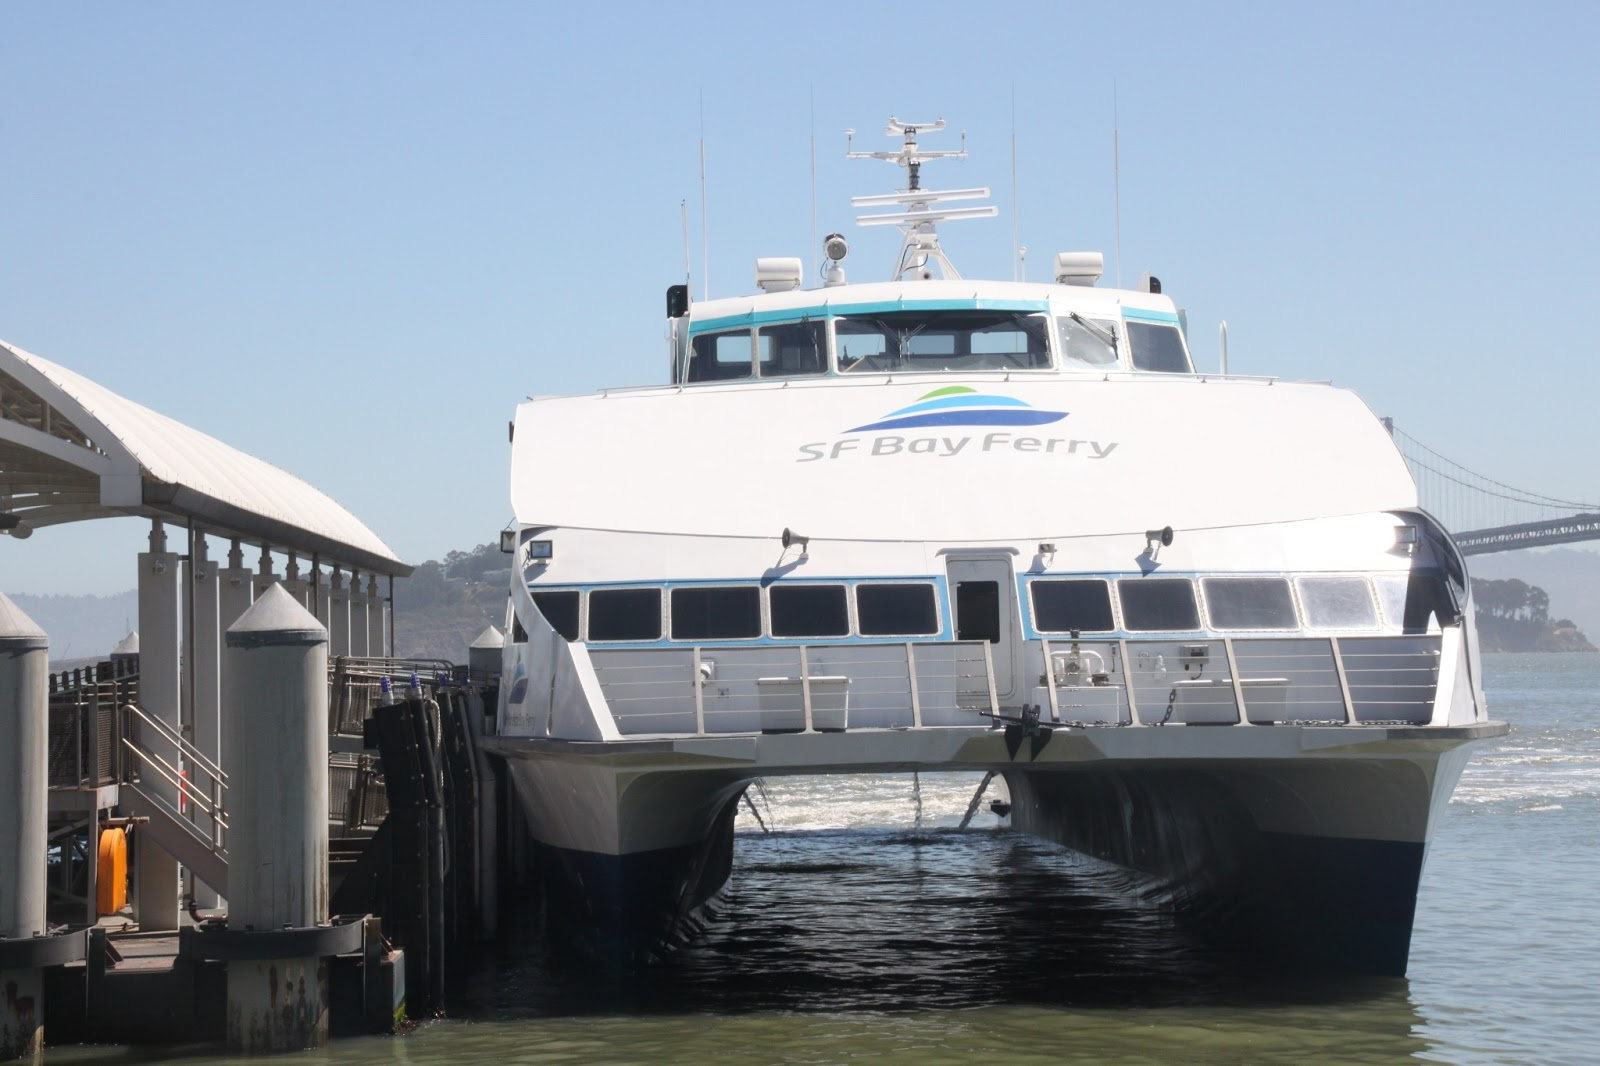 Rubies Pearls Ferry Ride The San Francisco Bay